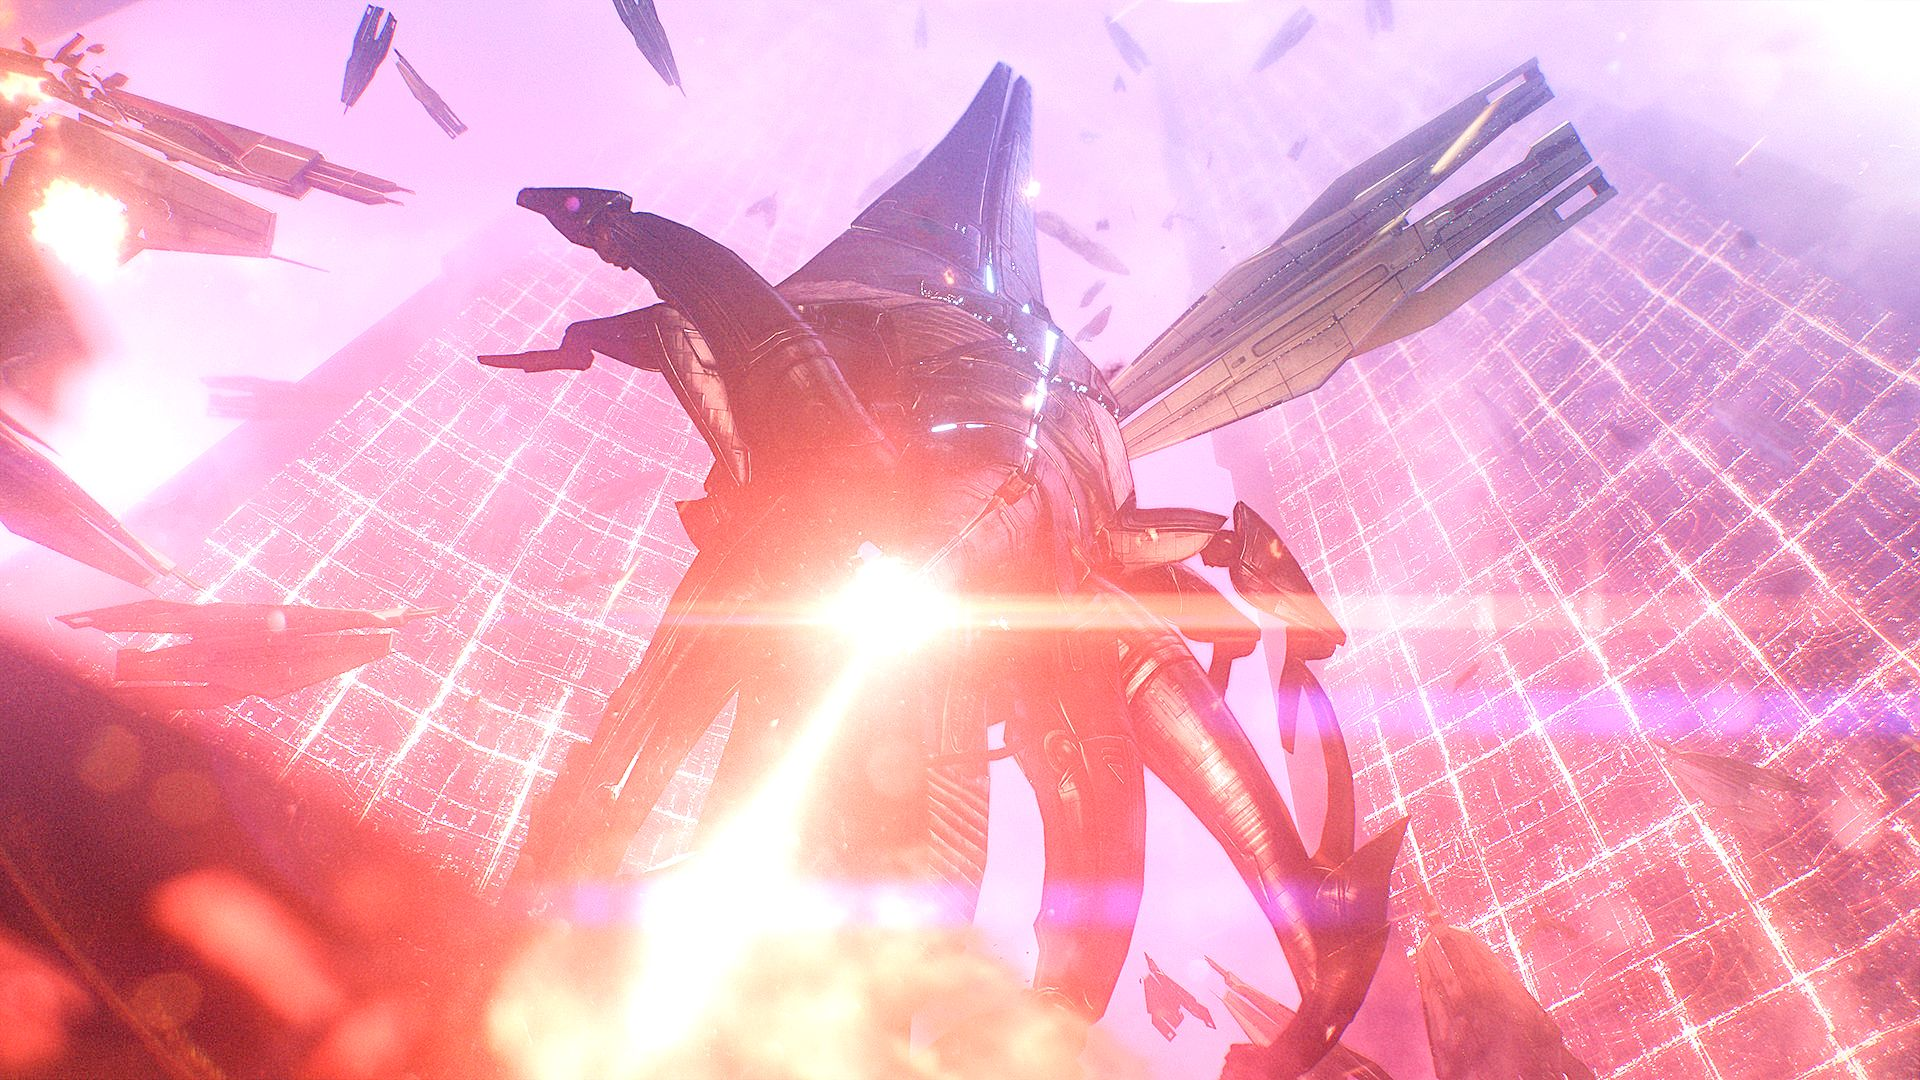 Why Mass Effect's Reapers are still so damn scary